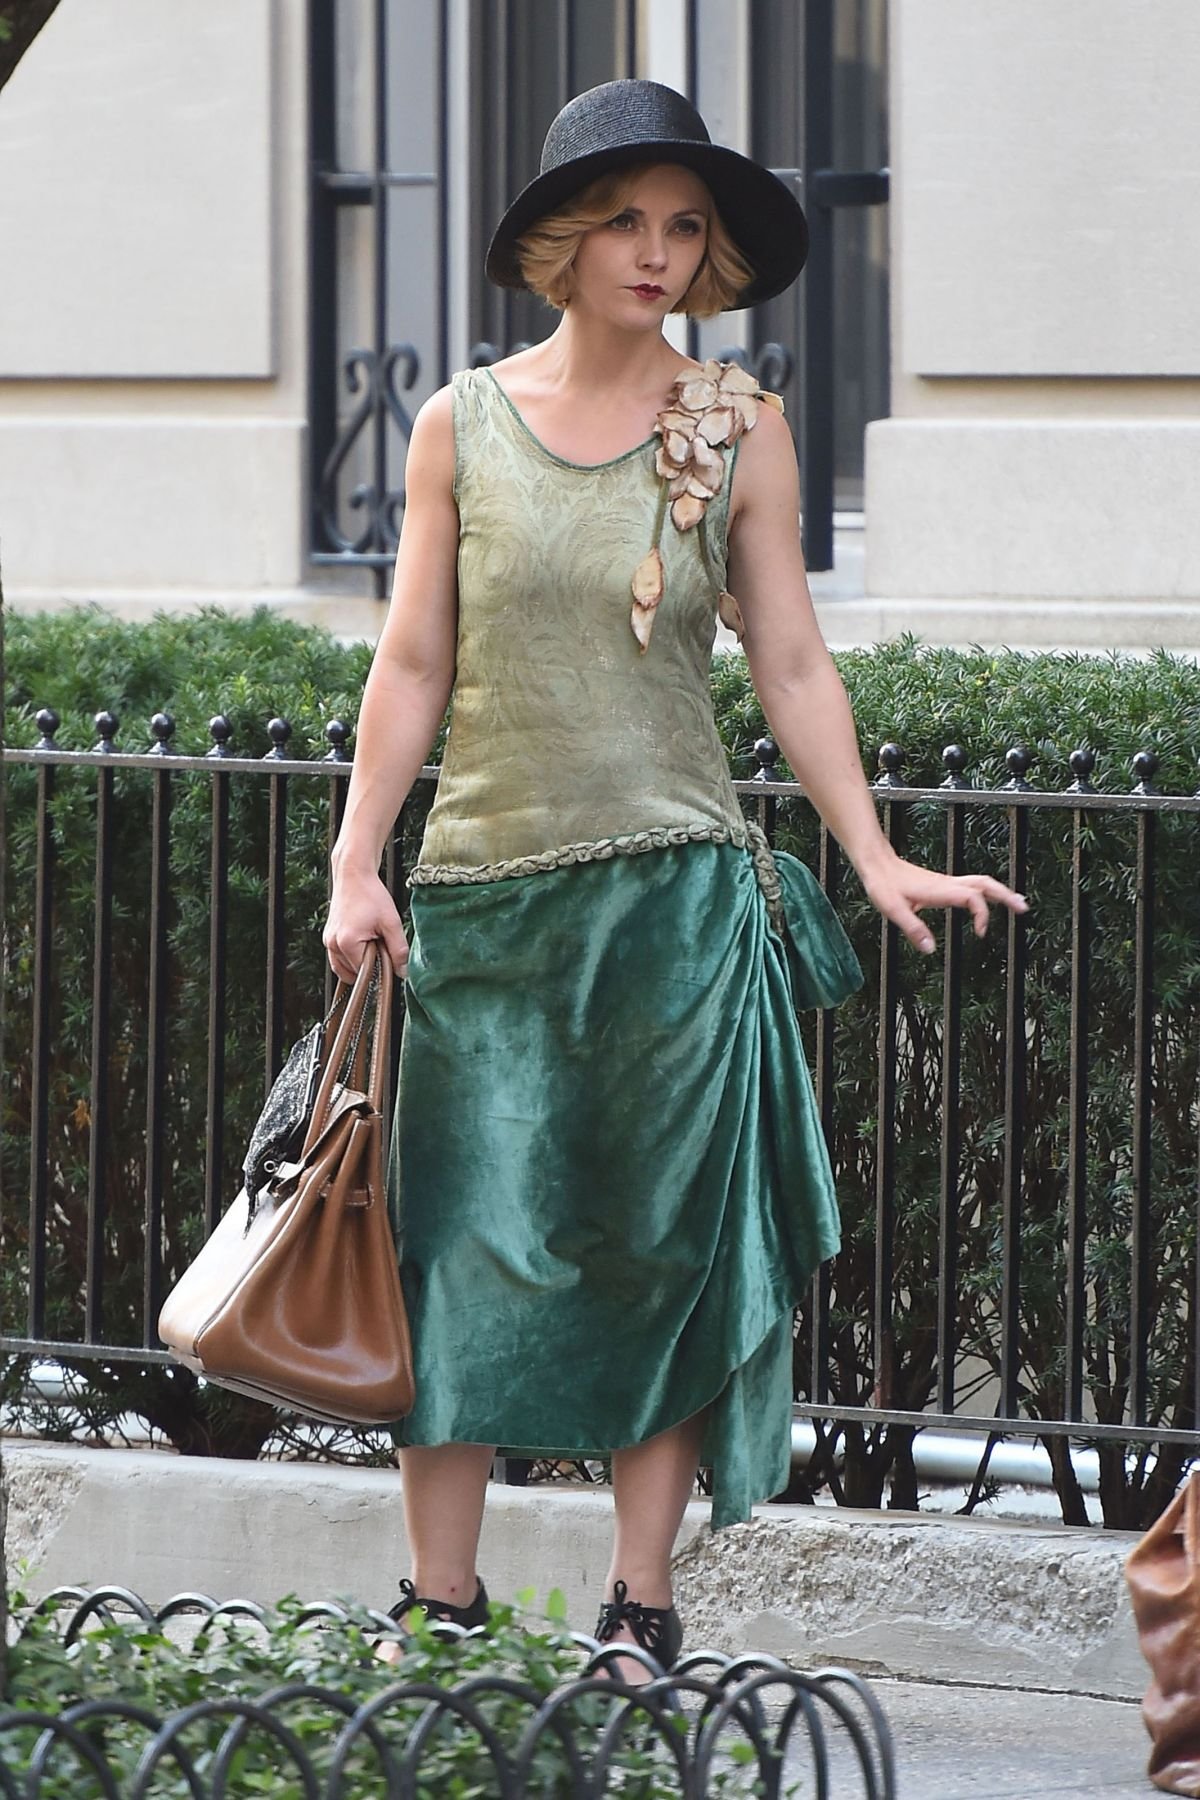 CHRISTINA RICCI on the Set of 'Z: the Begining of Everything' in ... Christina Ricci